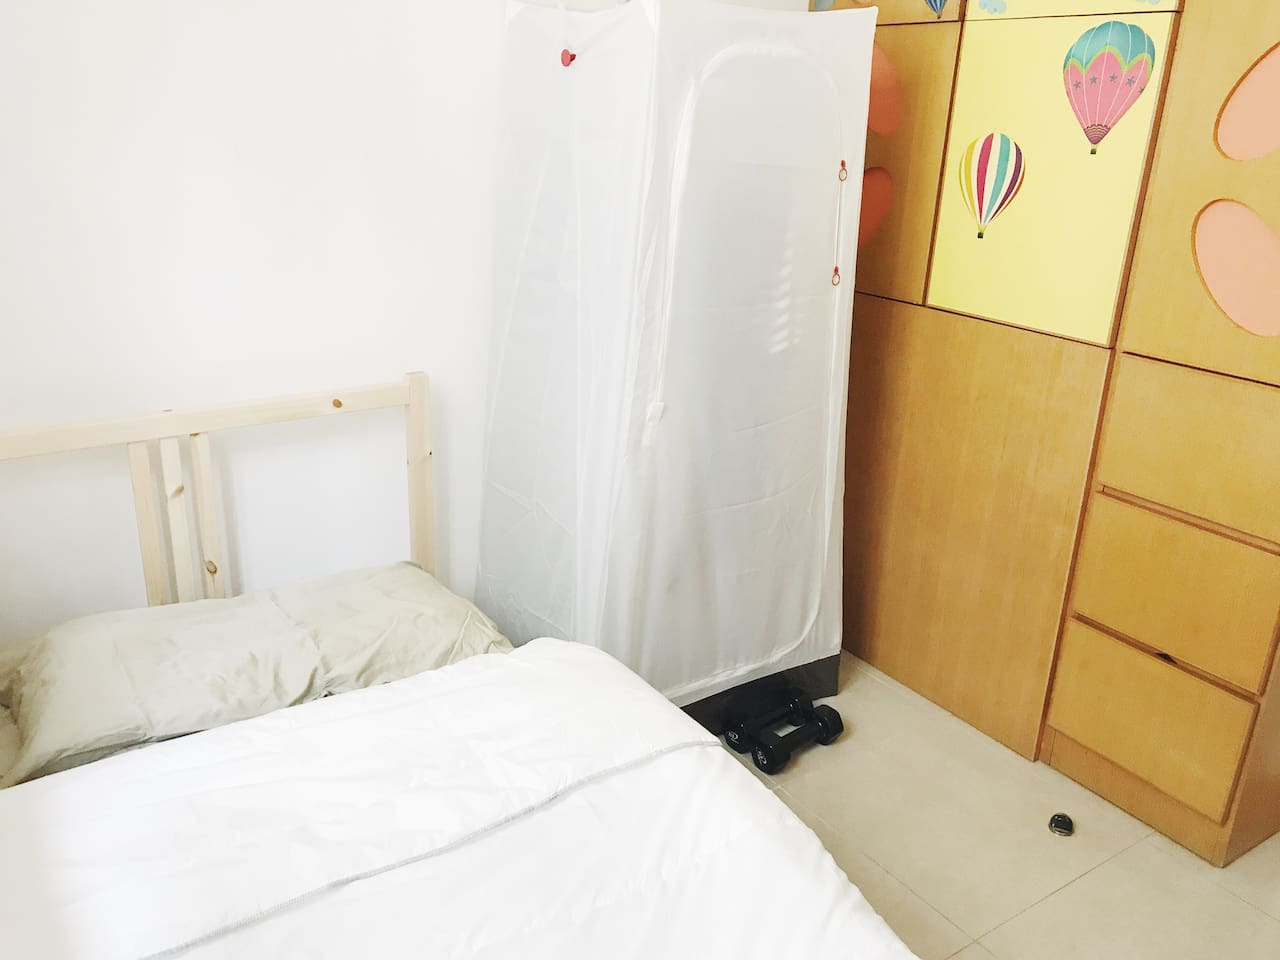 Your single bed and the white one is a handy wardrobe from Ikea you can use!